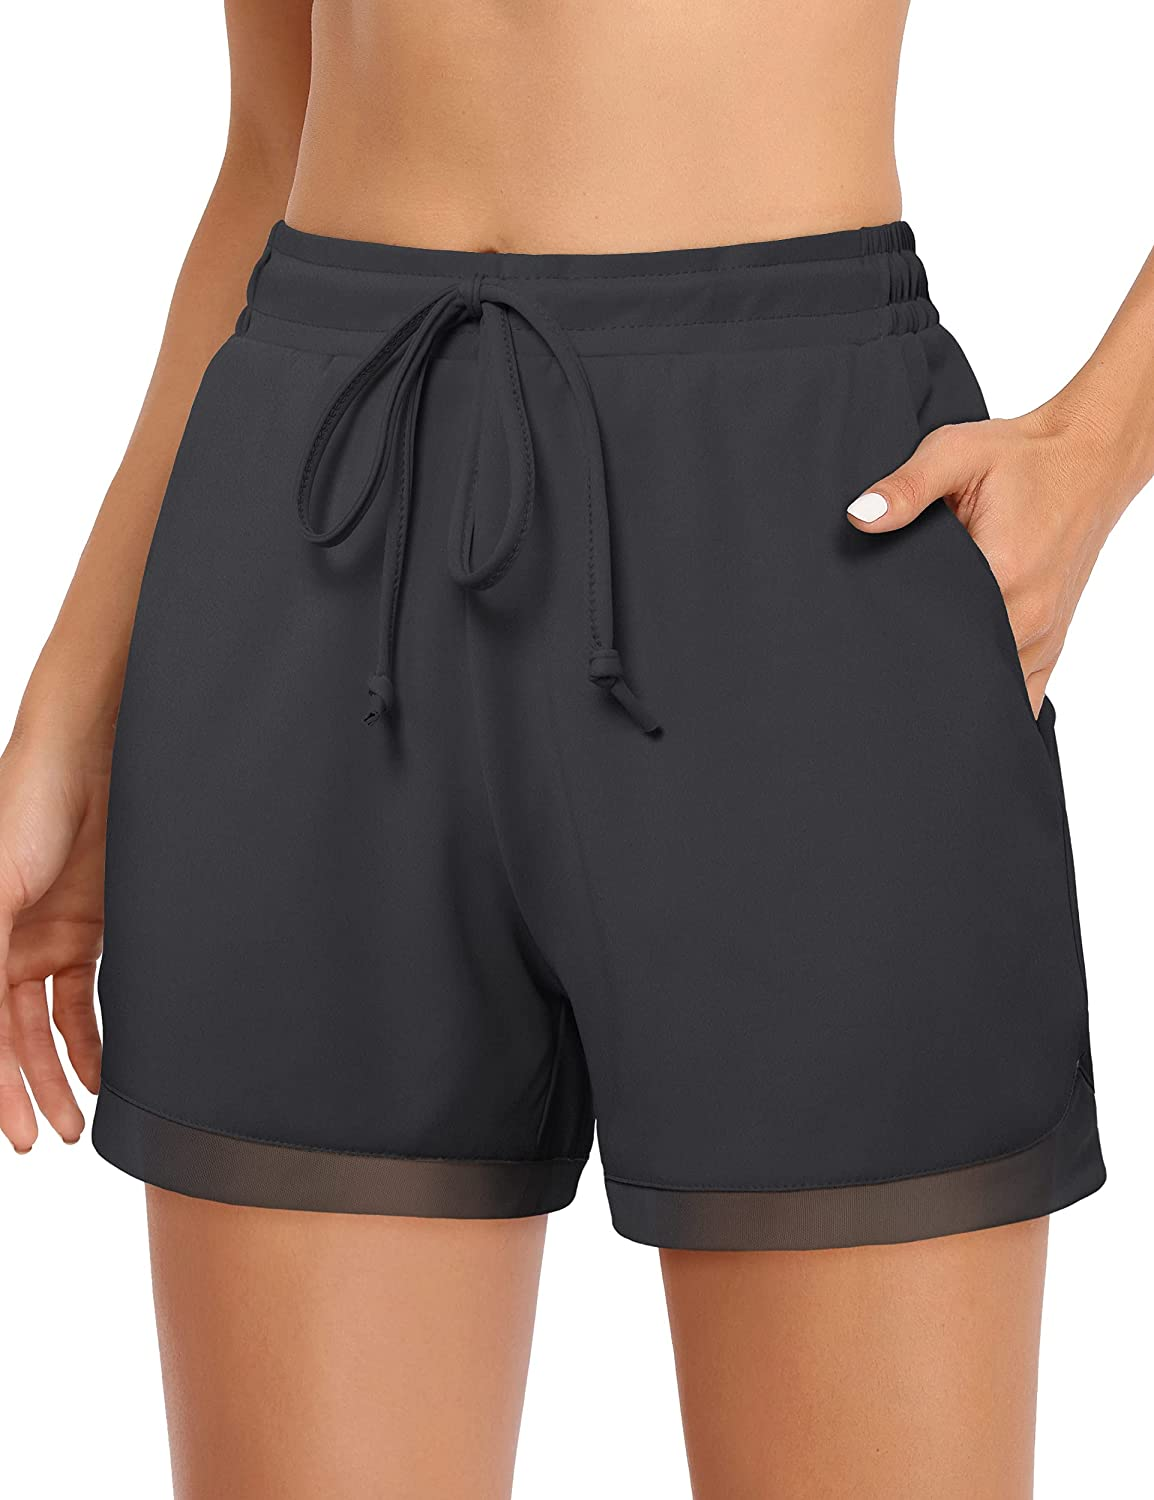 CHICHO Women's Running Shorts with Pockets Breathable Soft Workout Athletic Short